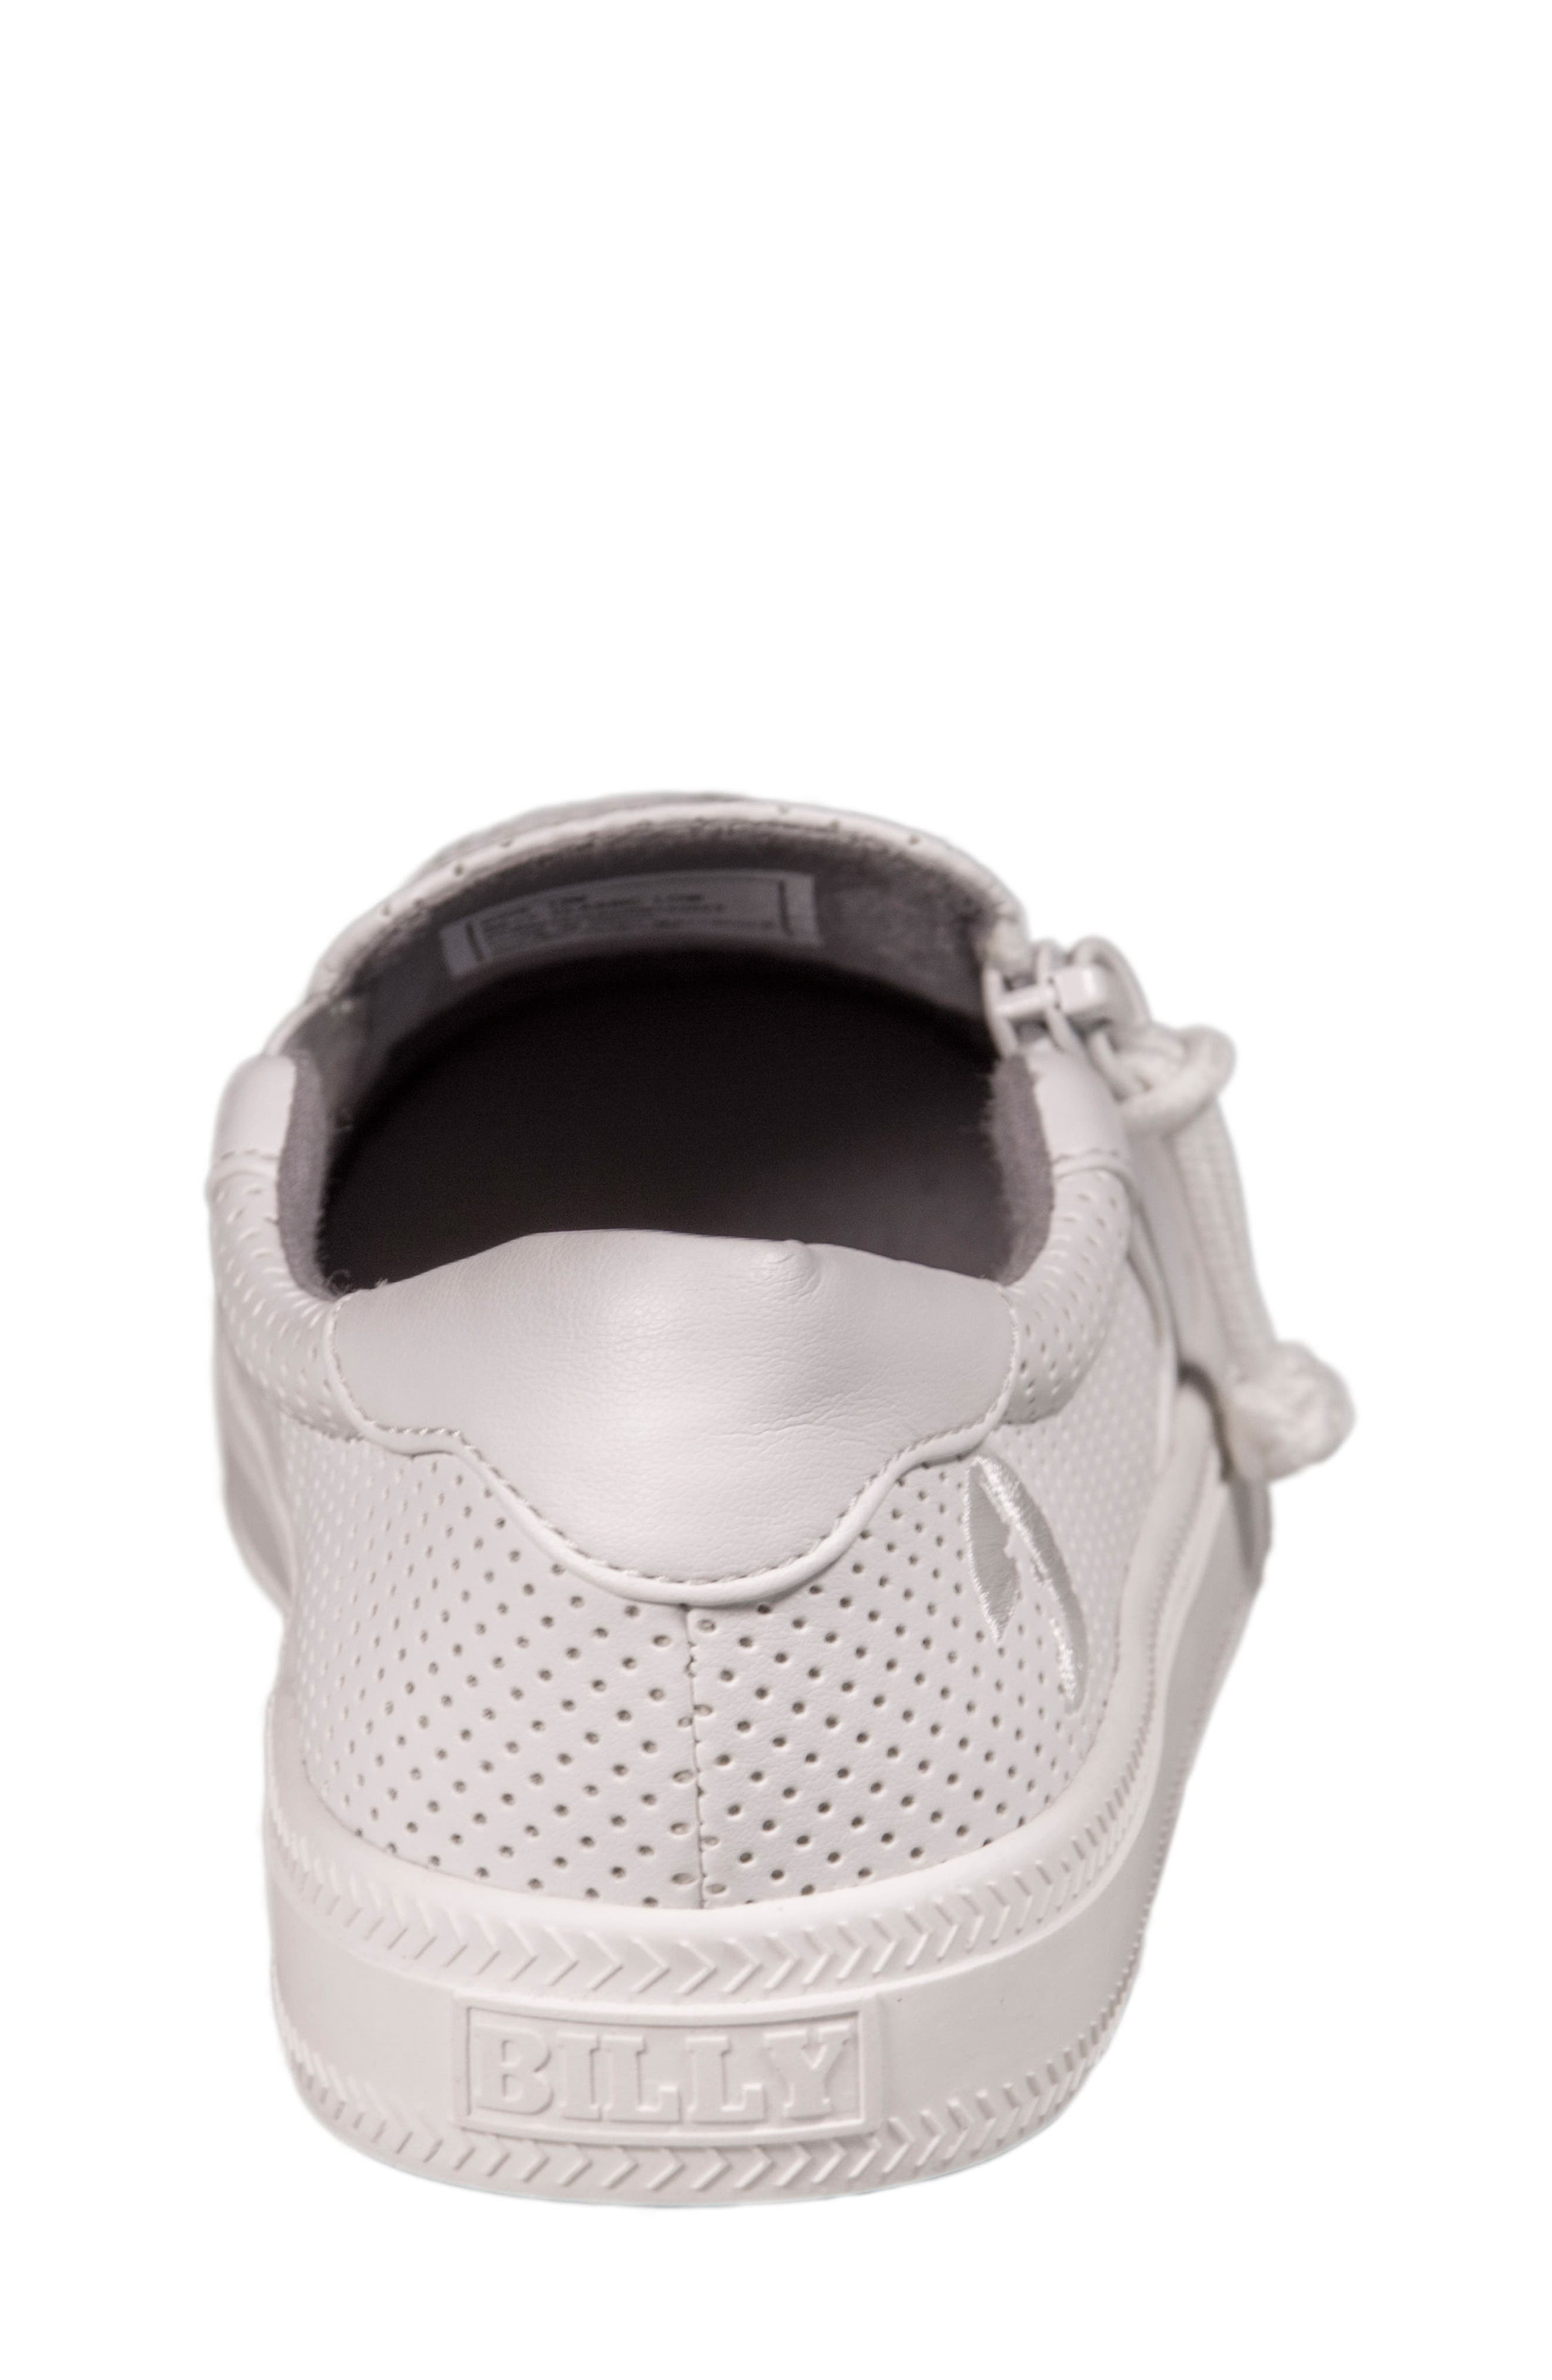 Zip Around Perforated Low Top Sneaker,                             Alternate thumbnail 7, color,                             White Perforated